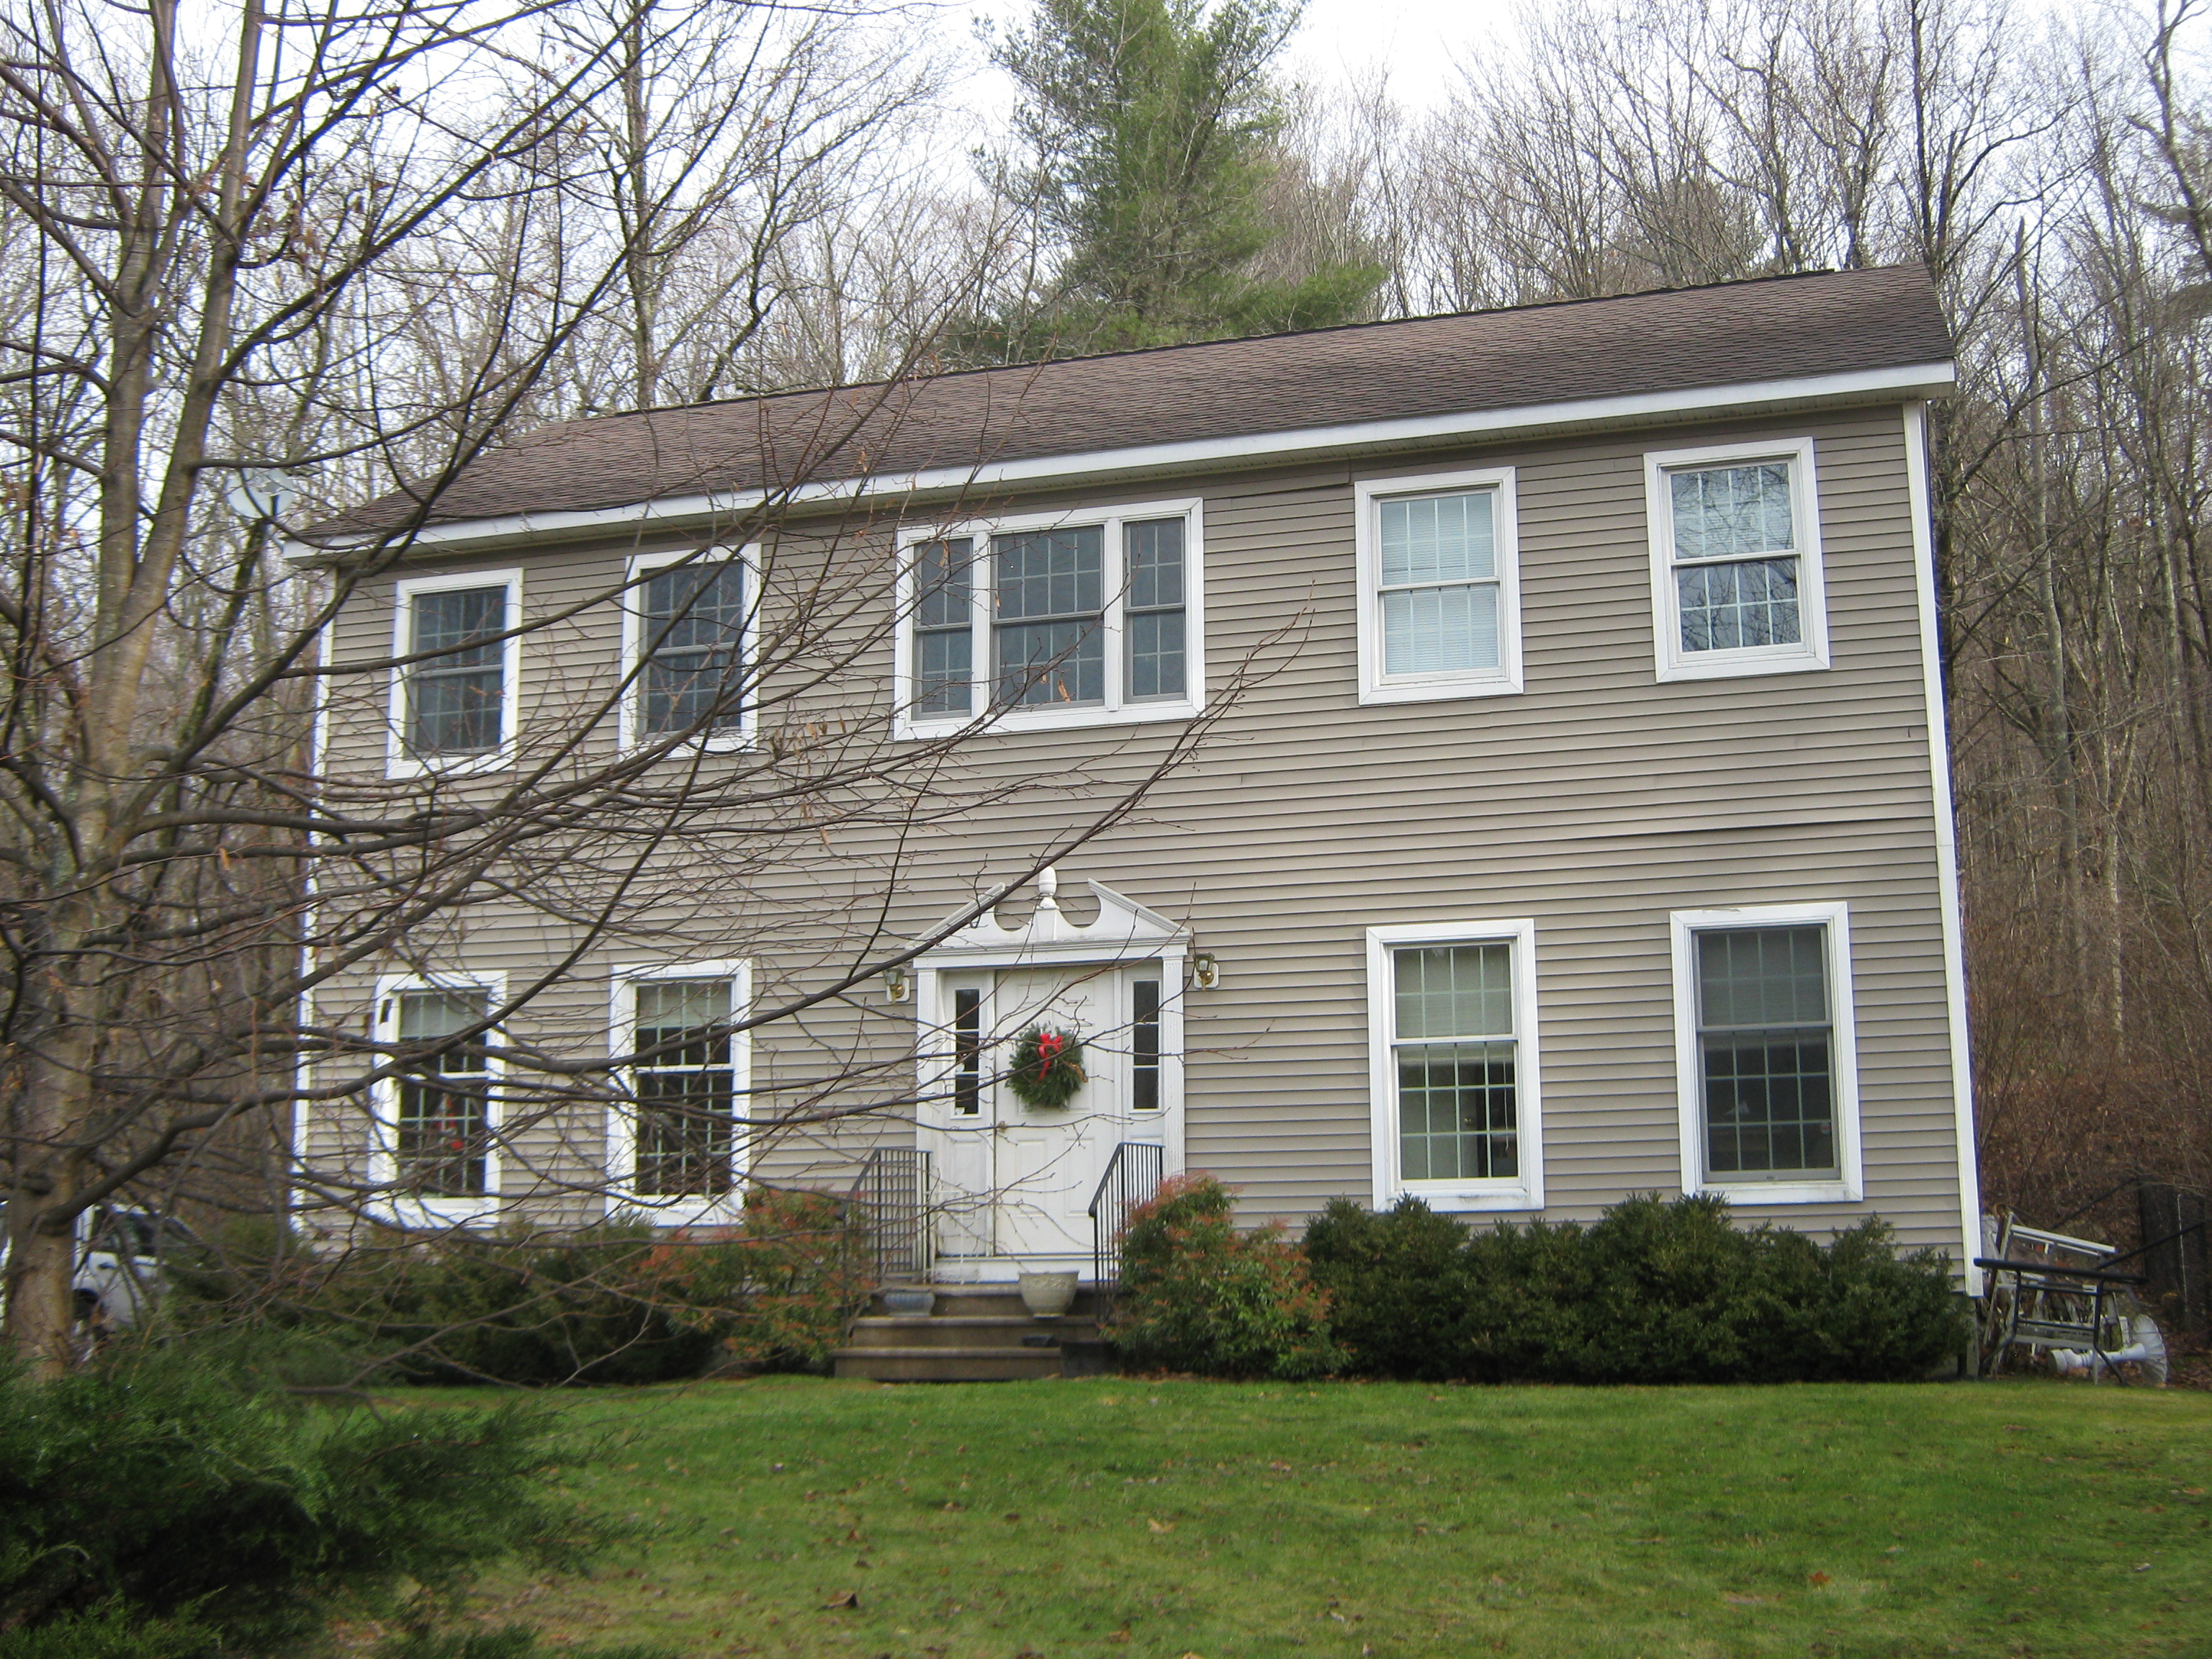 Moradia para Venda às Spacious Colonial Minutes To Downtown Great Barrington 85 Brush Hill Rd Great Barrington, Massachusetts, 01230 Estados Unidos